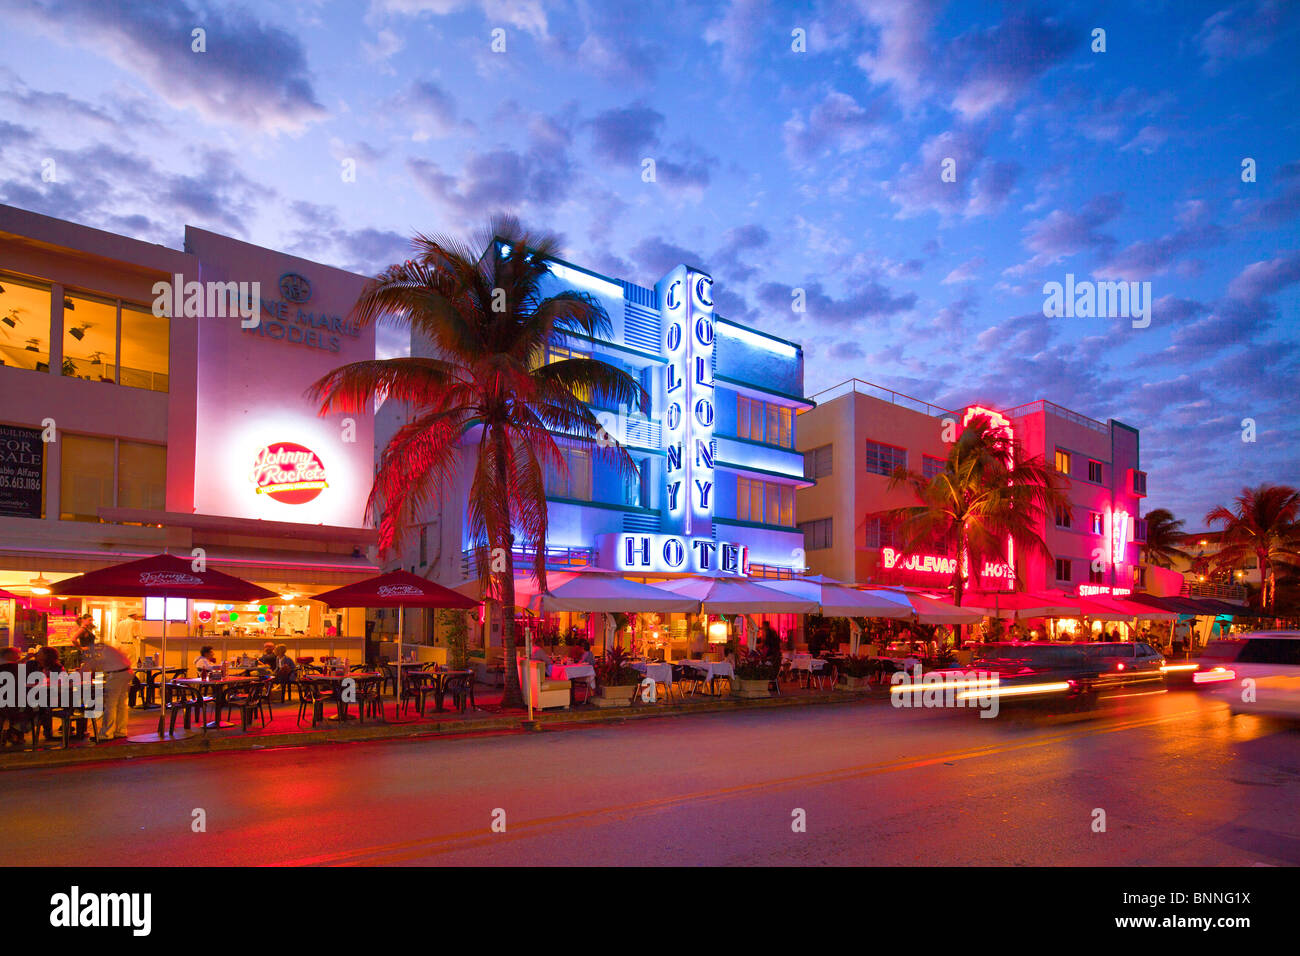 Buildings We Have A Crush On likewise Art Nouveau Art Deco Eclectico further Streamline Moderne likewise Stock Photo Art Deco Neon Lit Historic Buildings Ocean Drive Miami South Beach 30591734 in addition Steak Restaurant Smith Wollensky Opens In Londons Adelphi Building. on art deco buildings